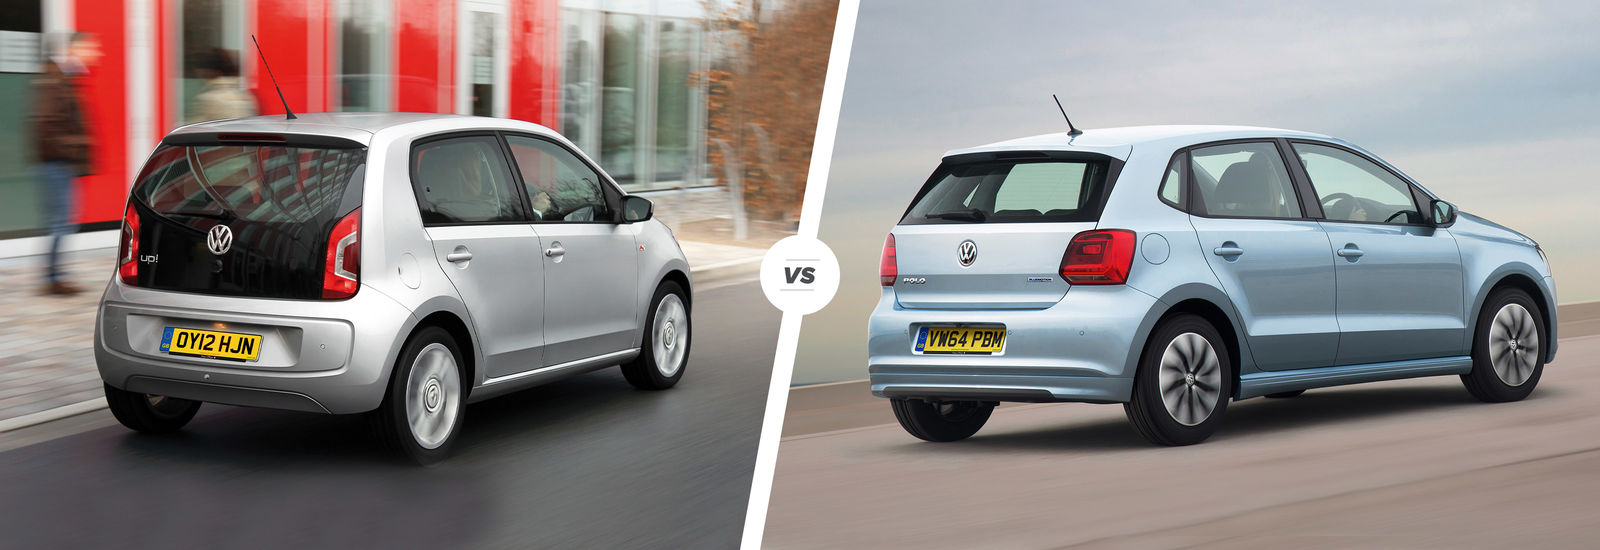 Its Worth Remembering The Polo Doesnt Have An Electric Only Option Like The E Up So Exclusively City Based Commuters Might Want To Bear This In Mind